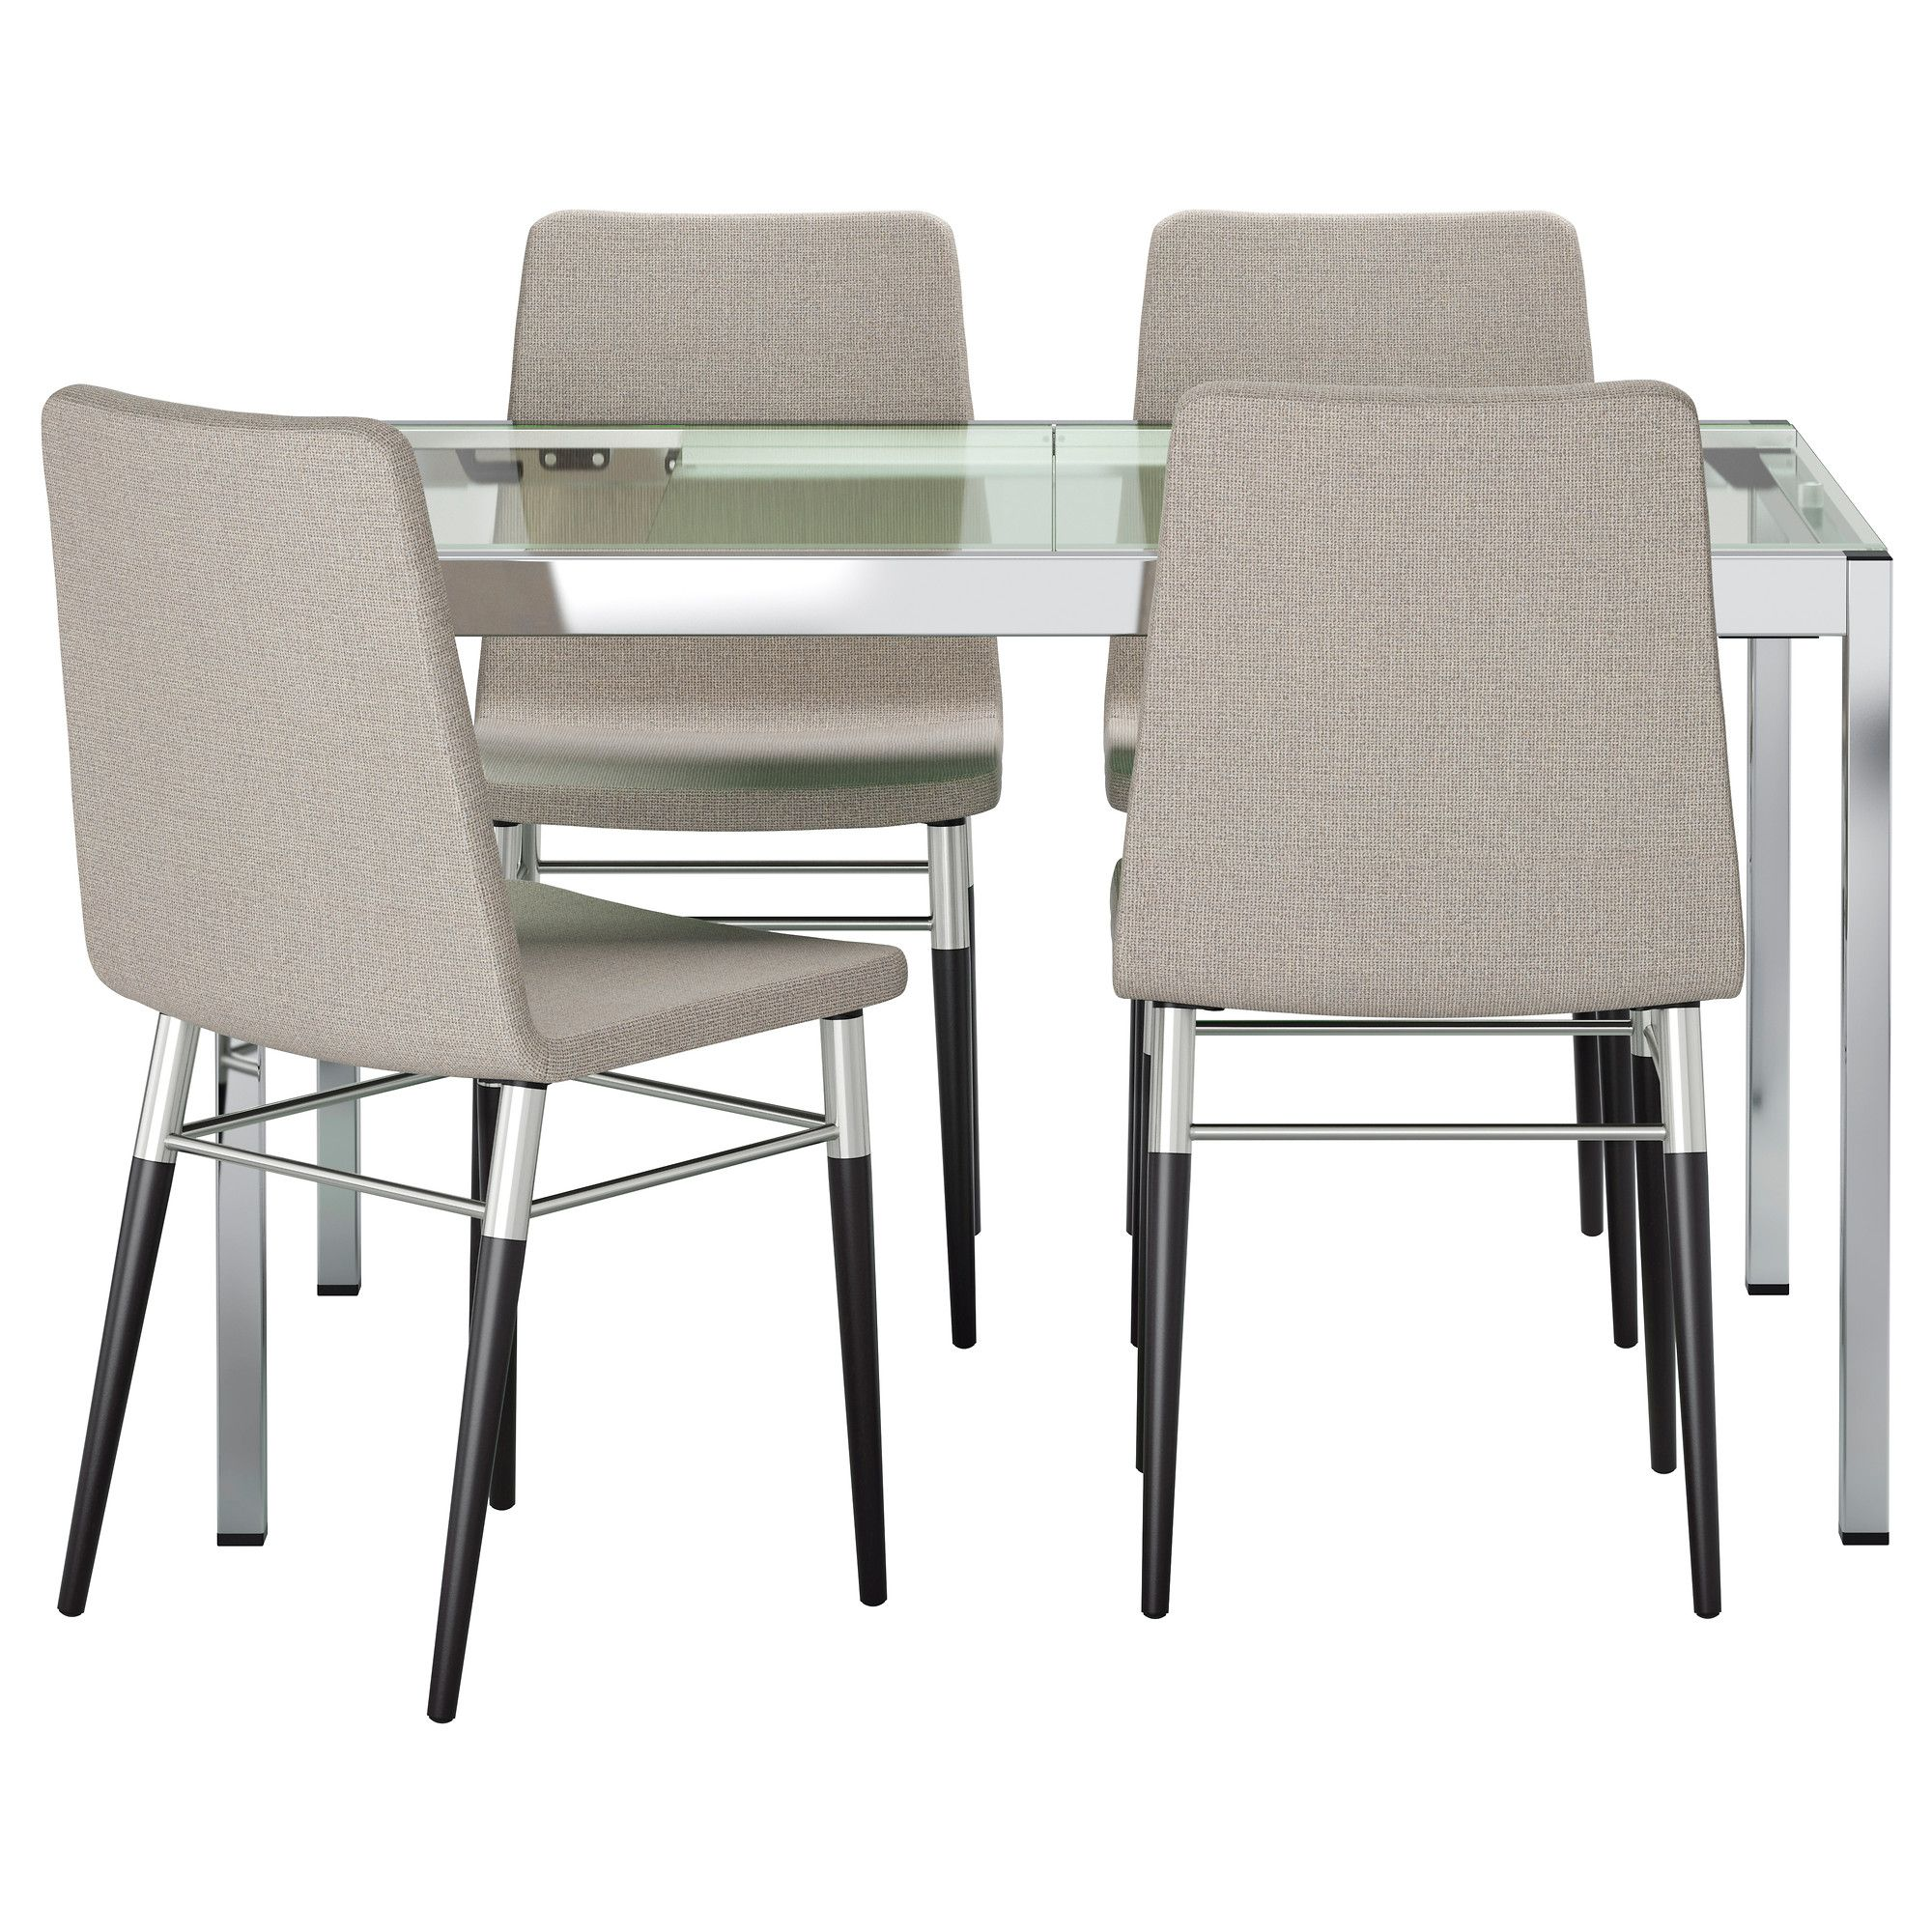 Glivarppreben Table And 4 Chairs  Ikea $778  For The Home Entrancing Small Dining Room Sets Ikea 2018